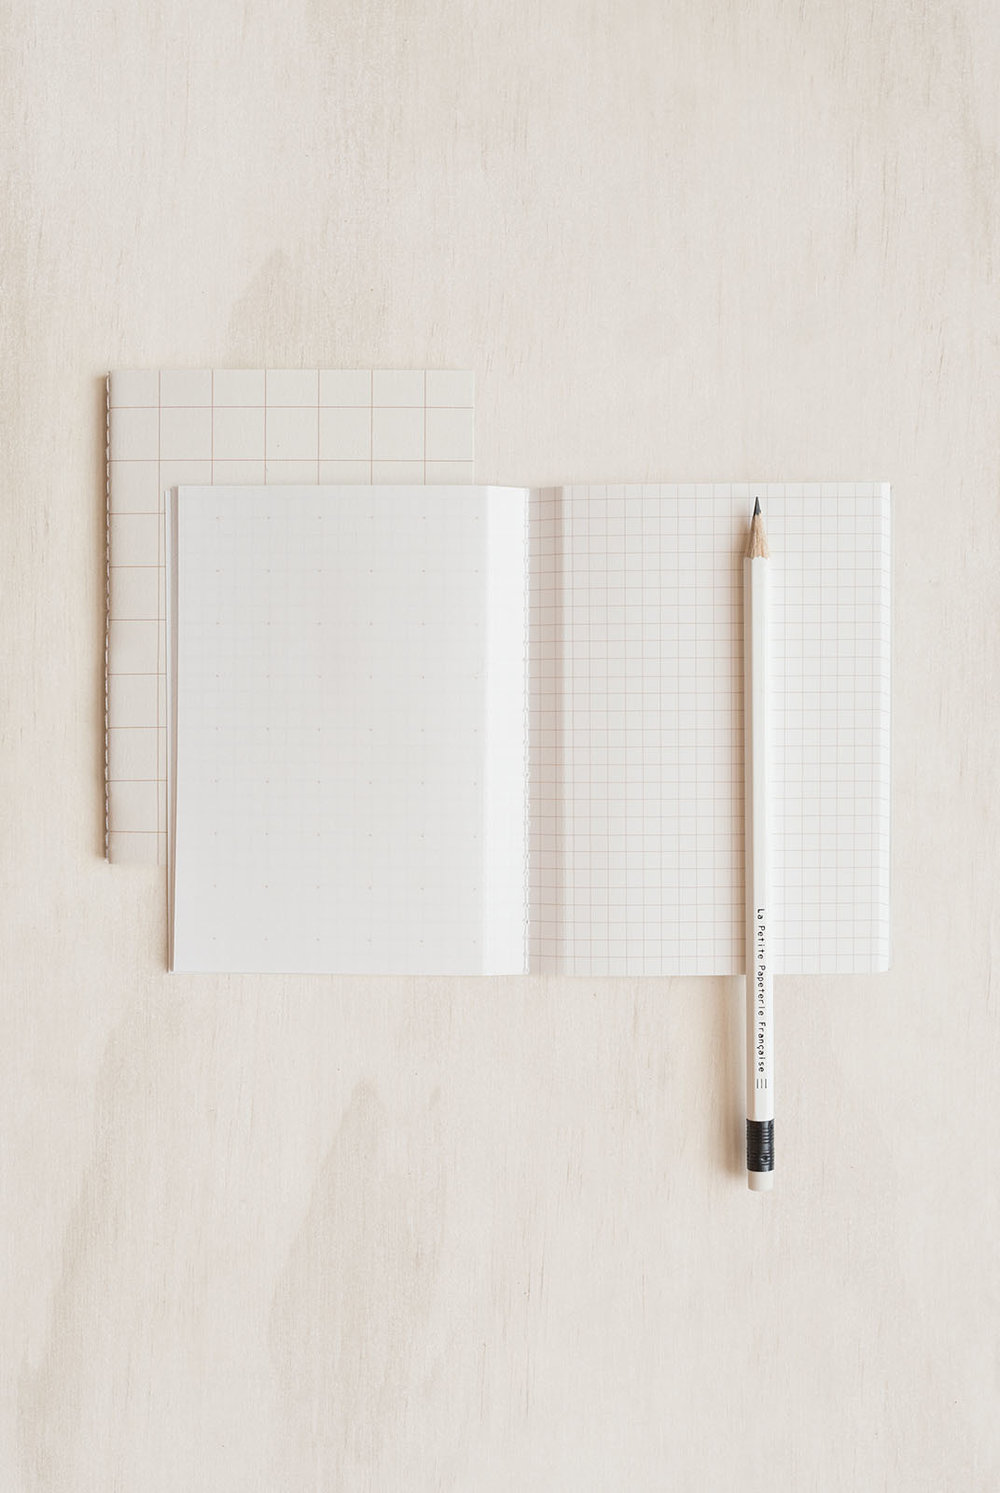 NoteMaker - La Petite Papeterie Francaise - The Useful Notebook, $12.69. Beautiful graph paper for brief notes.